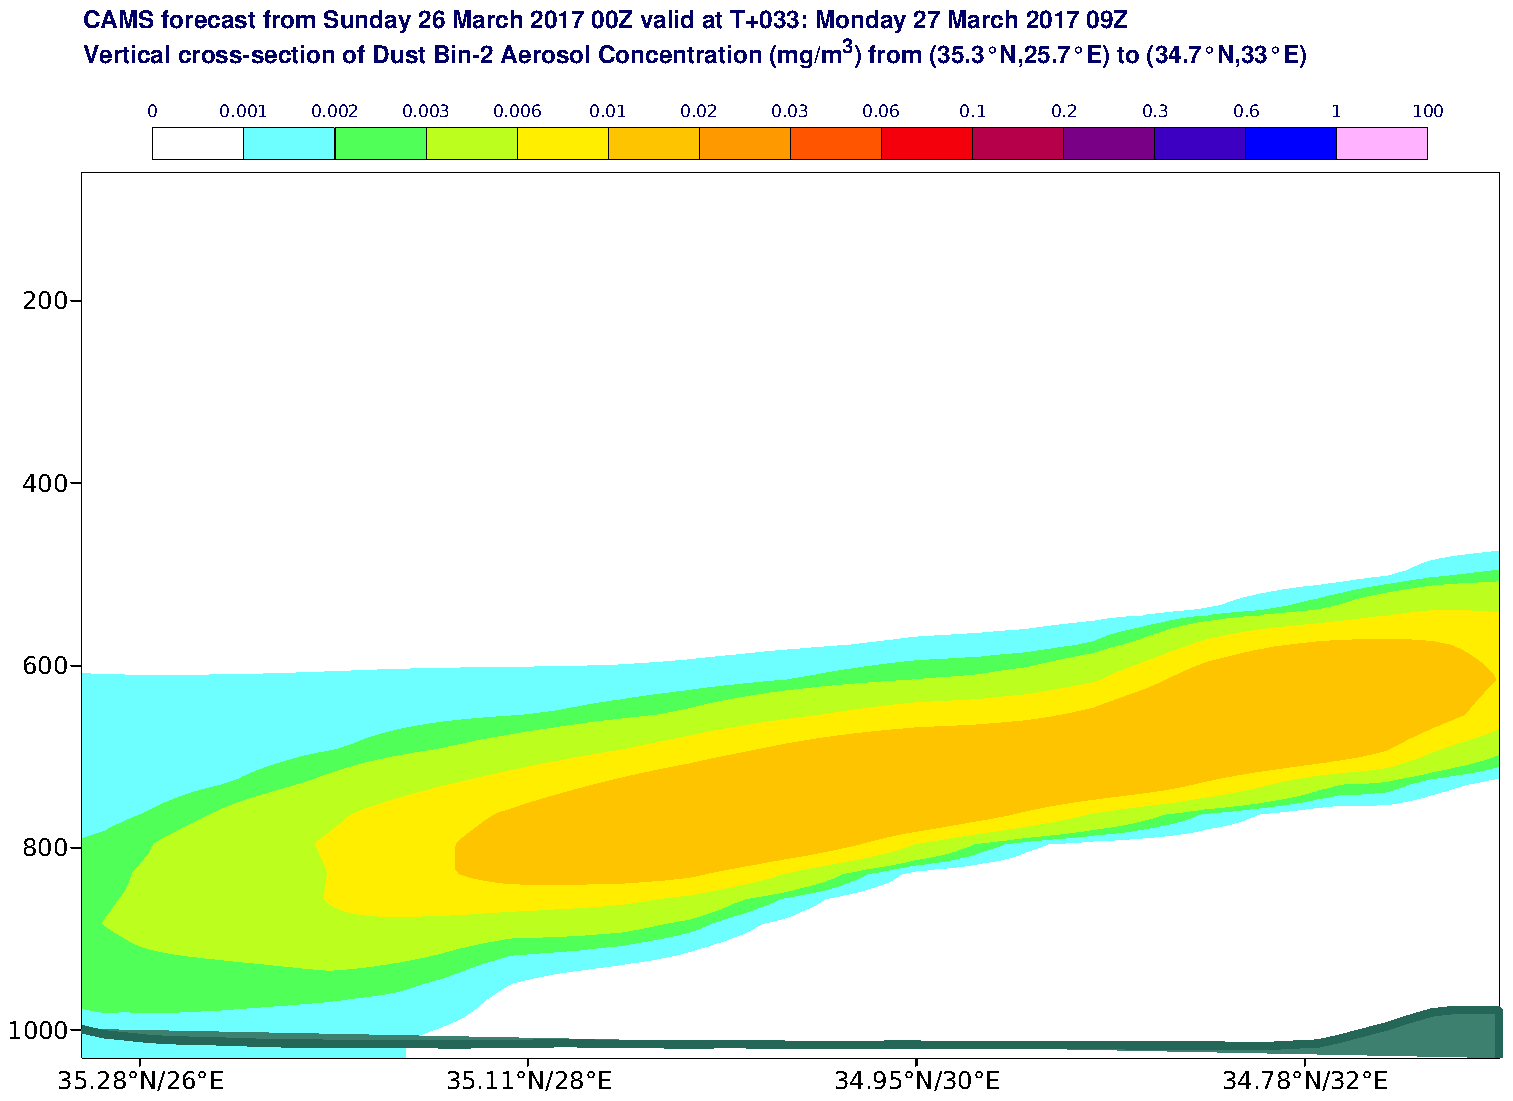 Vertical cross-section of Dust Bin-2 Aerosol Concentration (mg/m3) valid at T33 - 2017-03-27 09:00